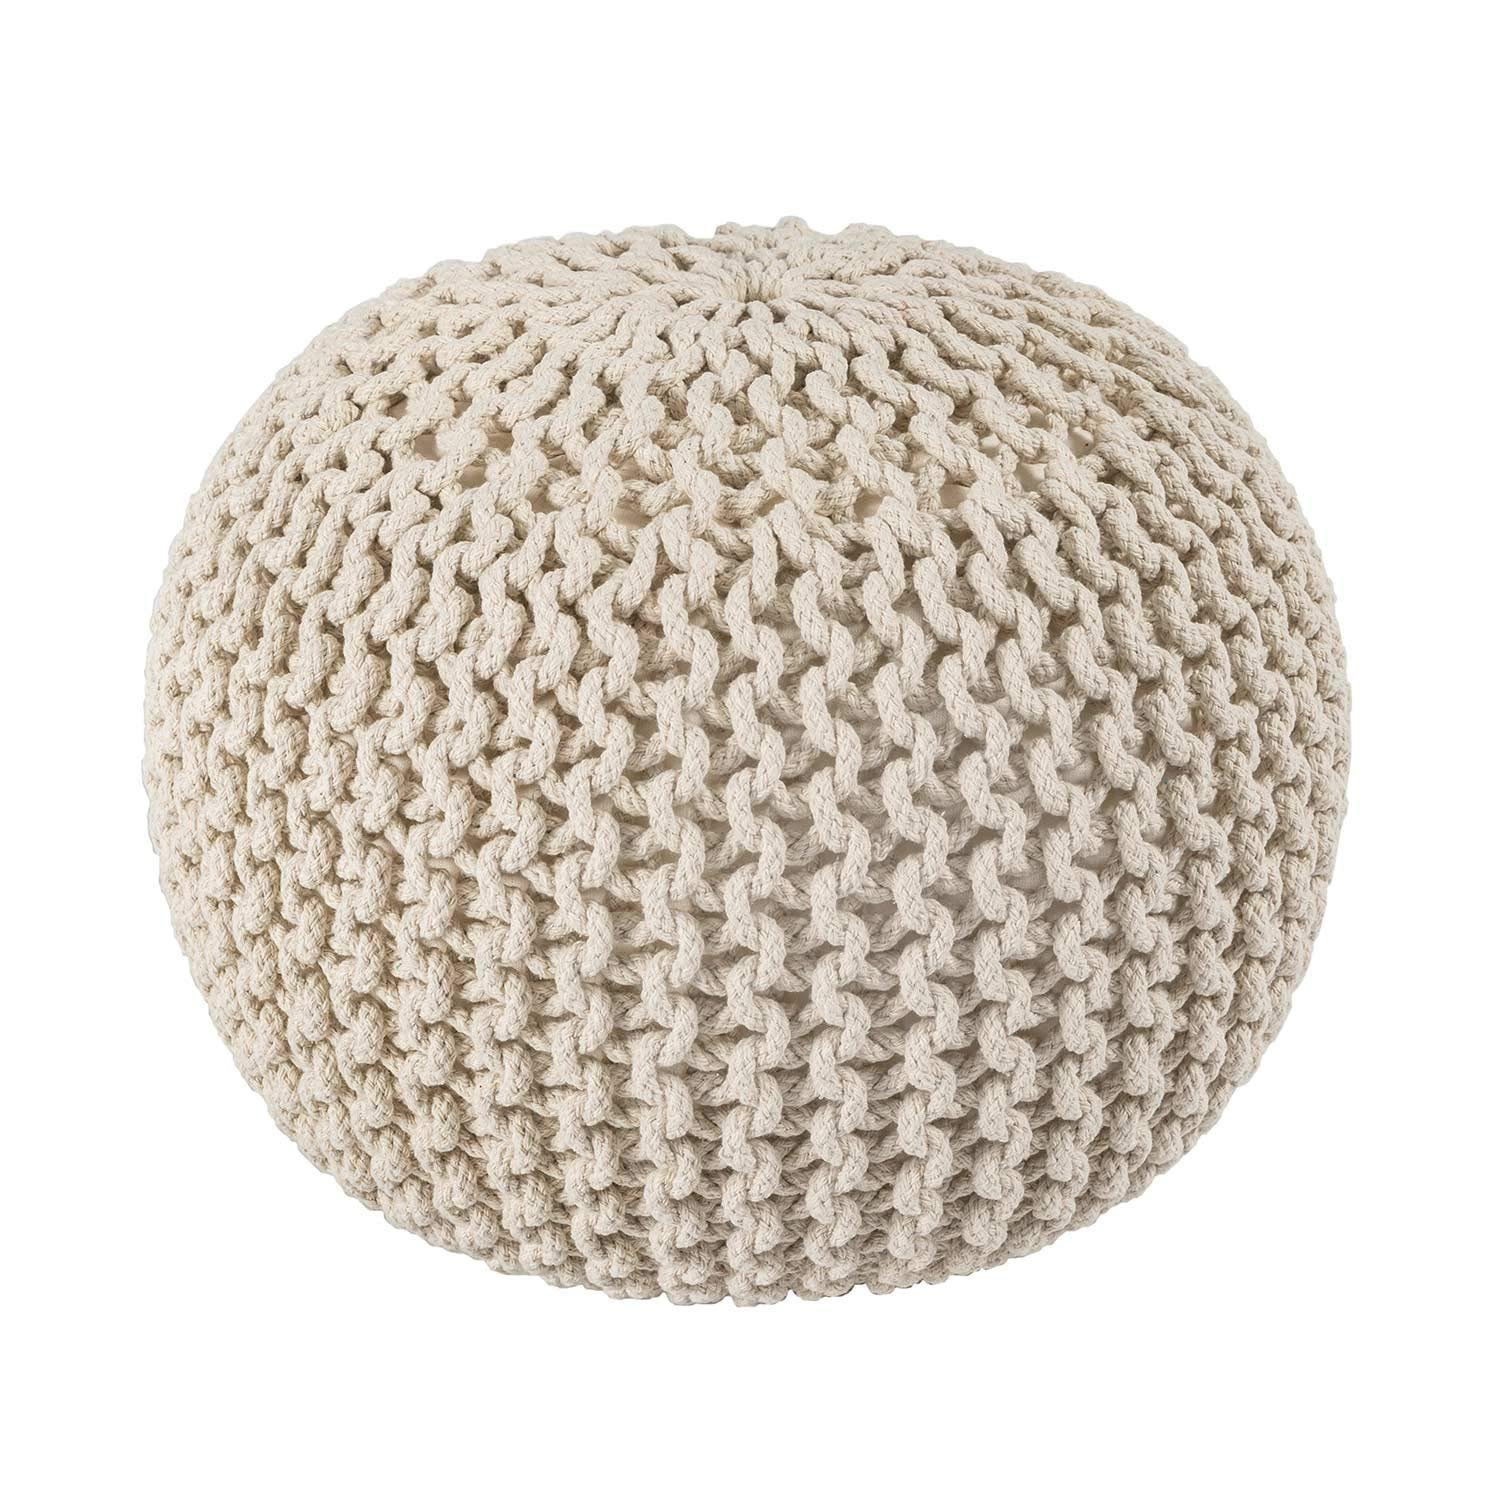 Artisans Of India Hand Knitted Cable Style Dori Pouf - Blue - Floor Ottoman - 100% Cotton Braid Cord - Handmade & Hand stitched - Truly one of a kind seating - 20 Dia x 14 High